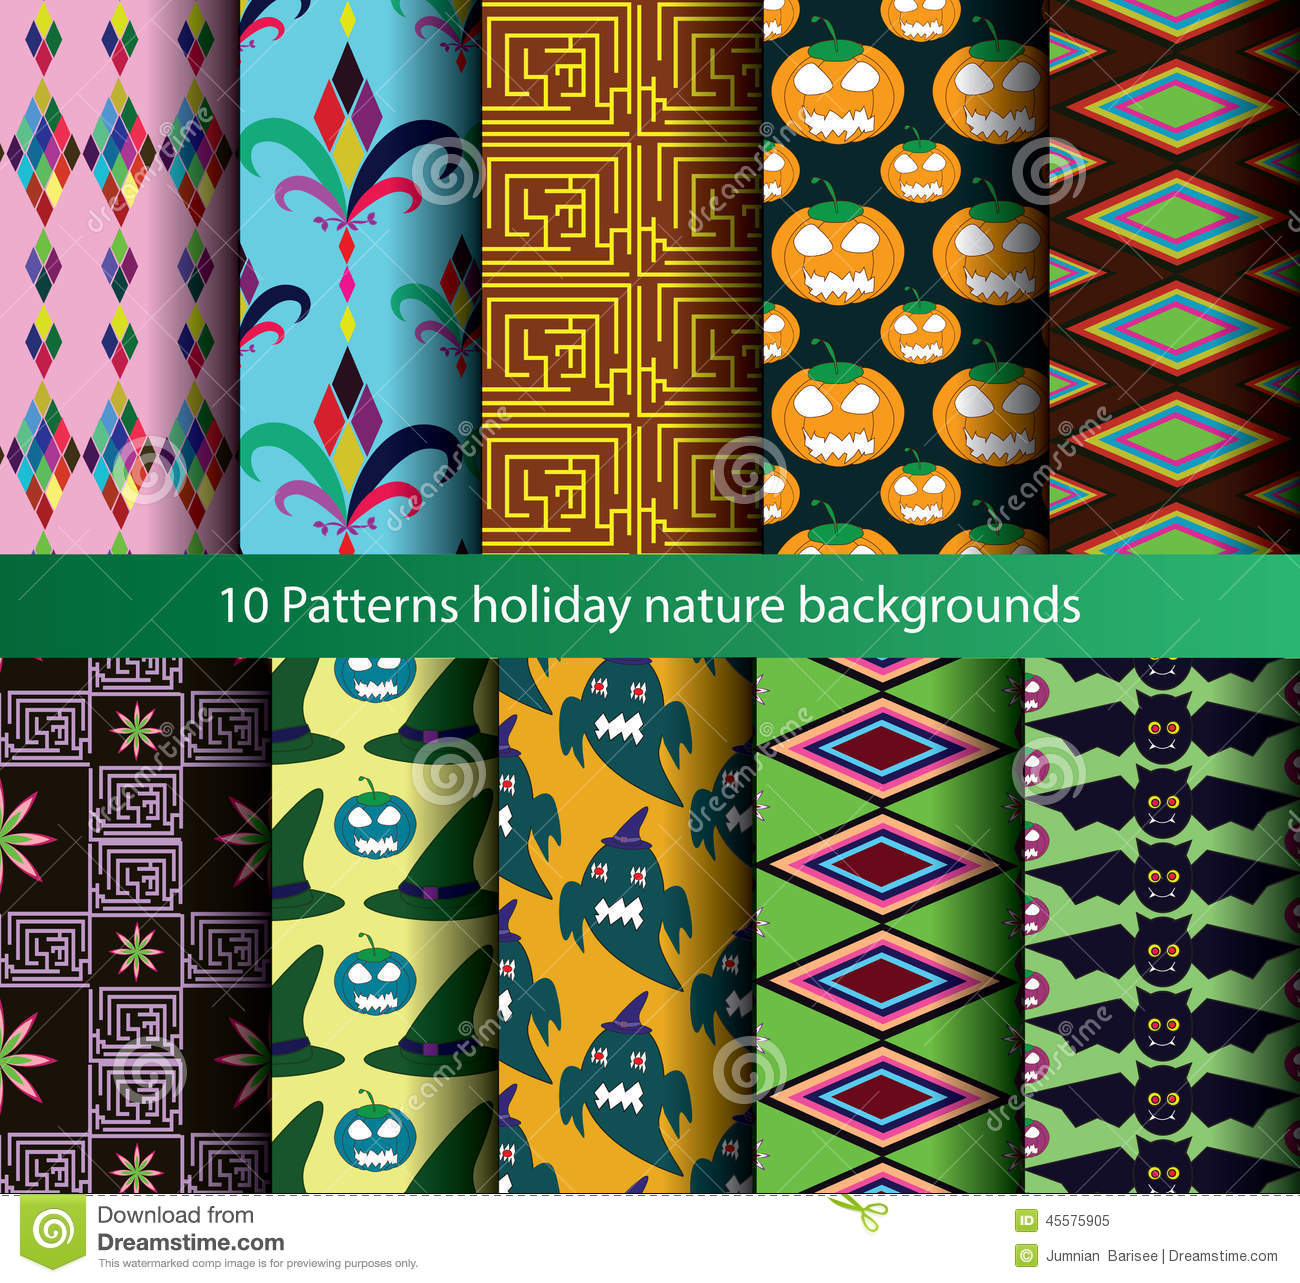 Ten patterns backgrounds nature seamless.